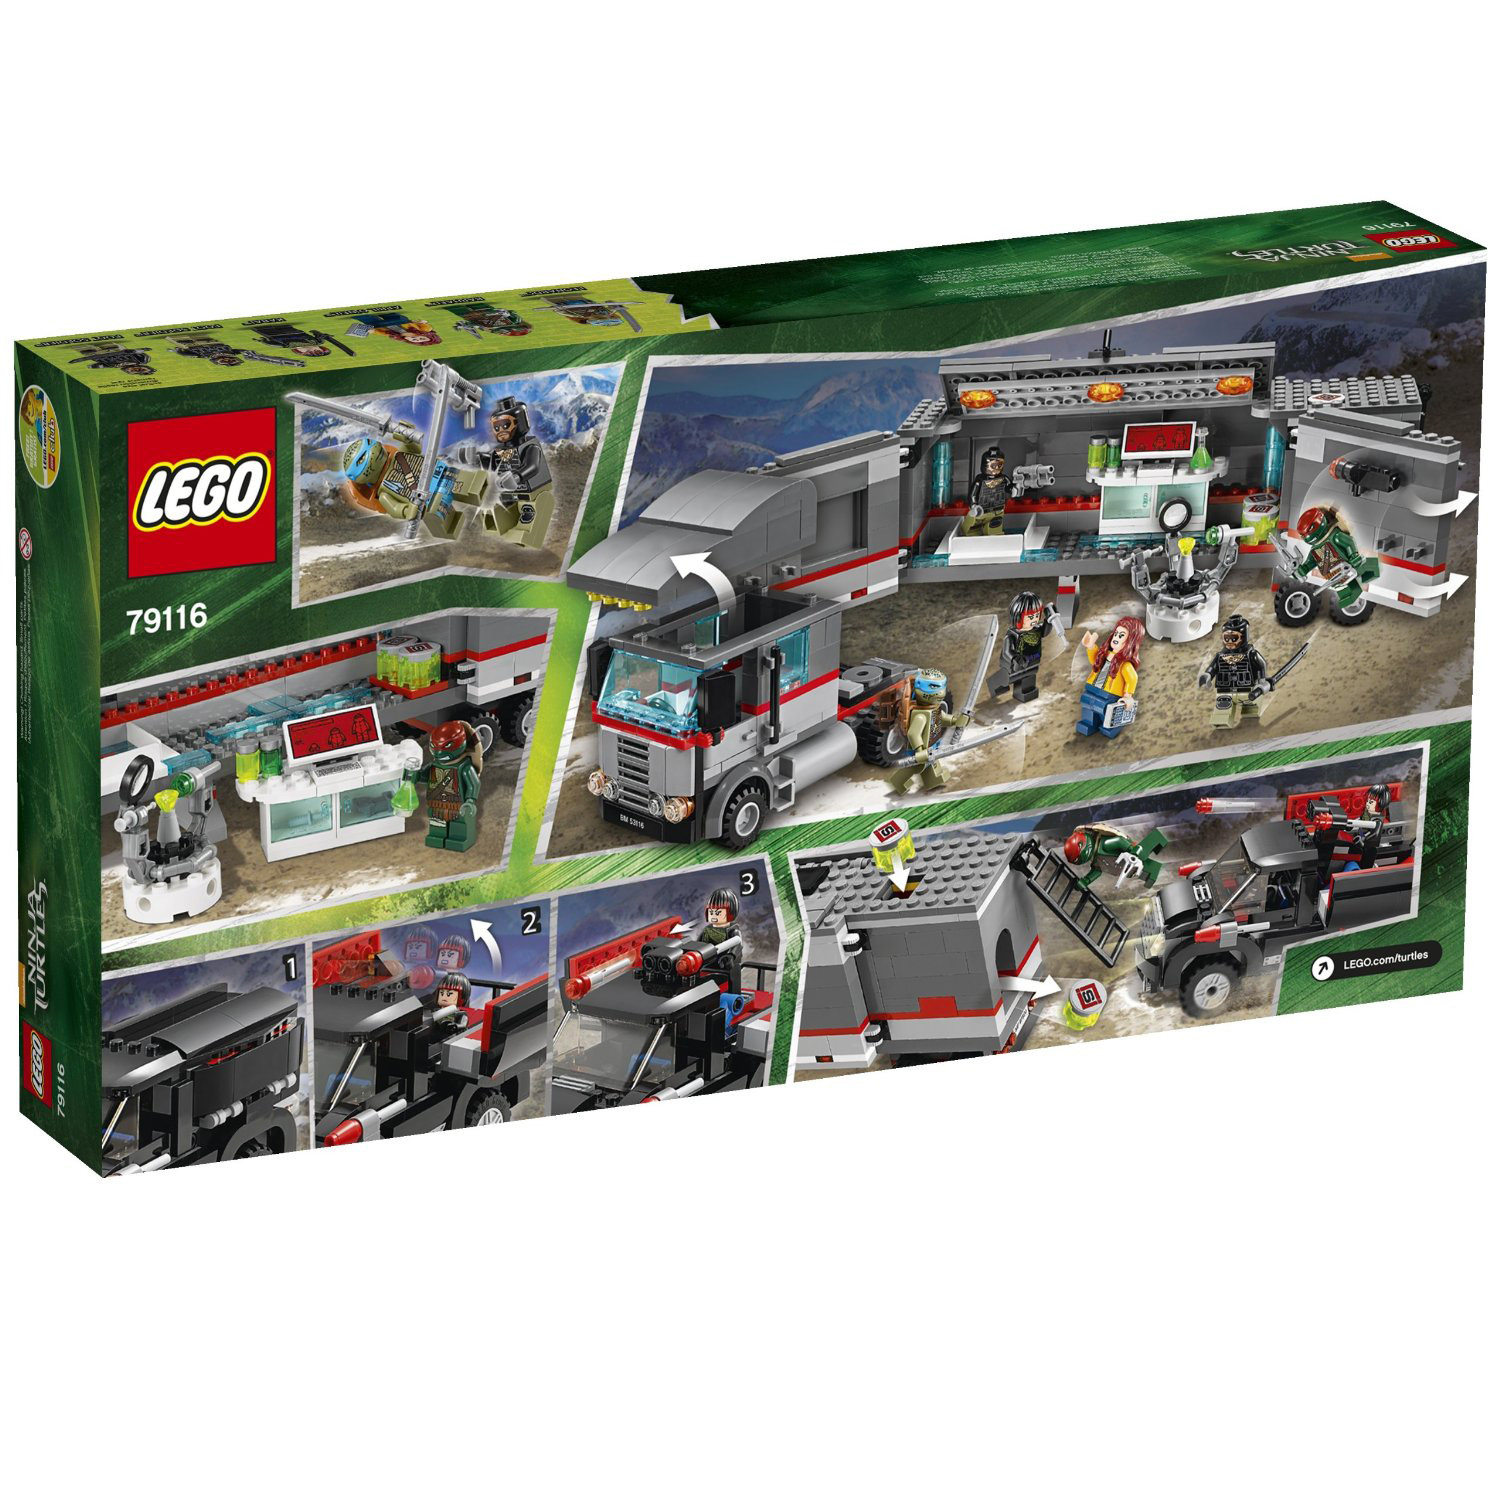 LEGO x Teenage Mutant Ninja Turtles Movie Set 15